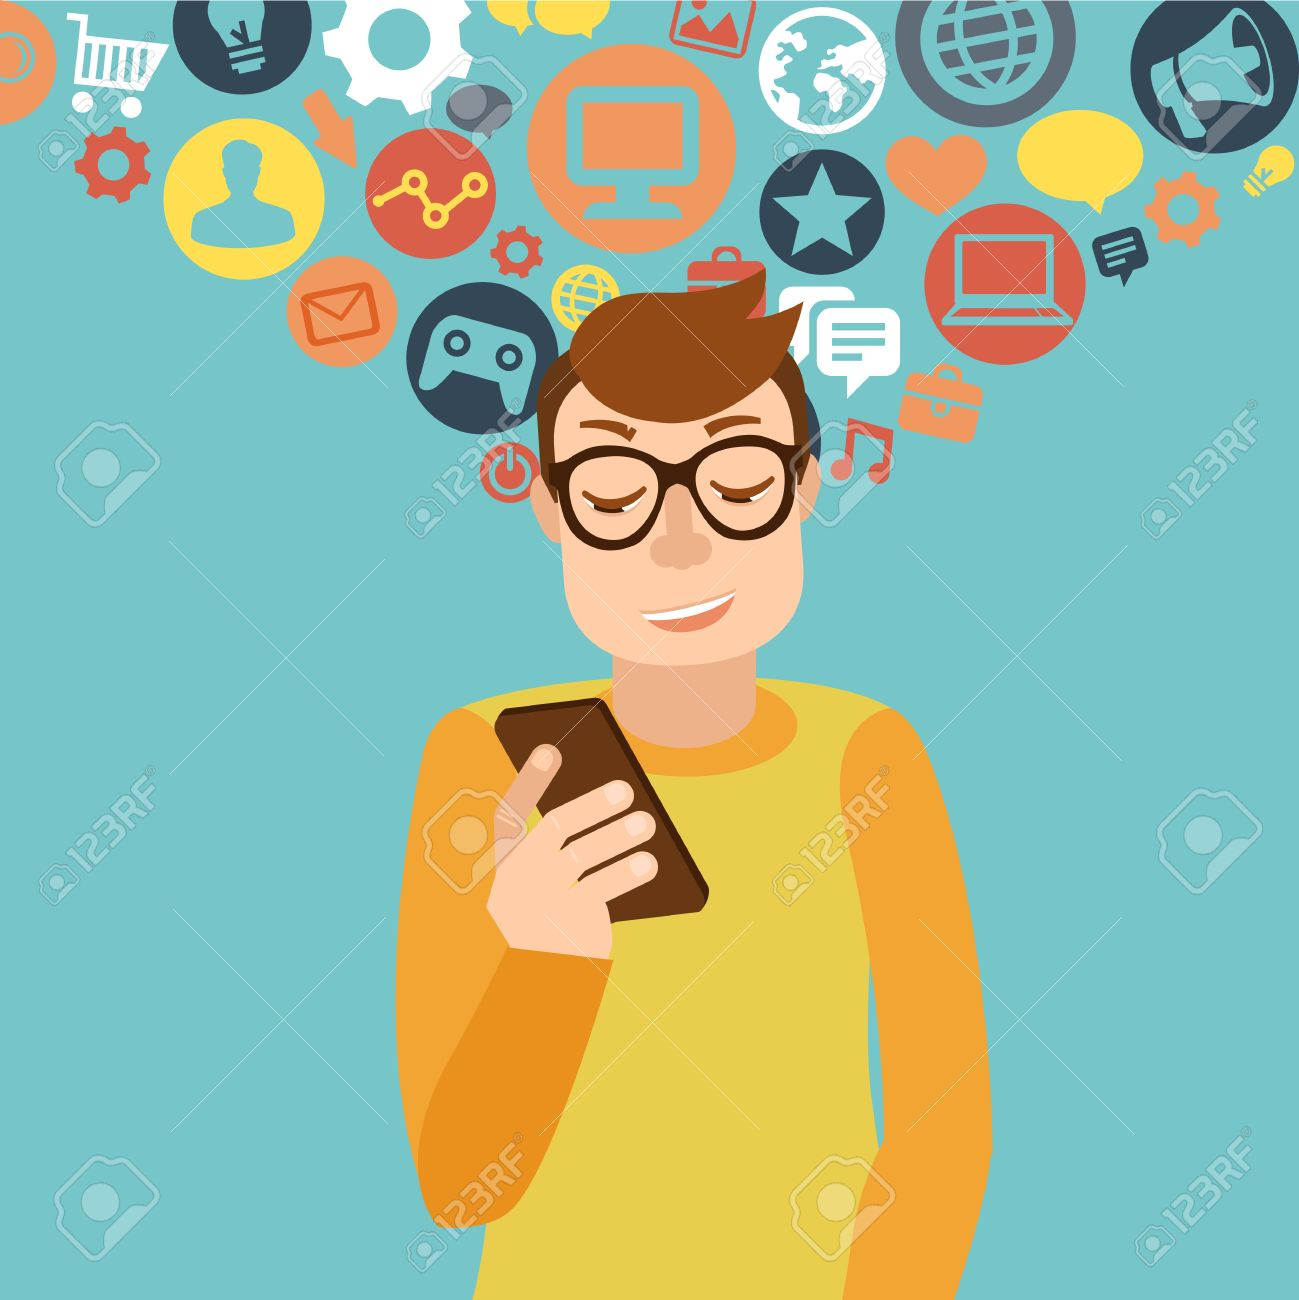 Vector man wearing glasses in flat style - smartphone addiction concept Stock Vector - 25122462